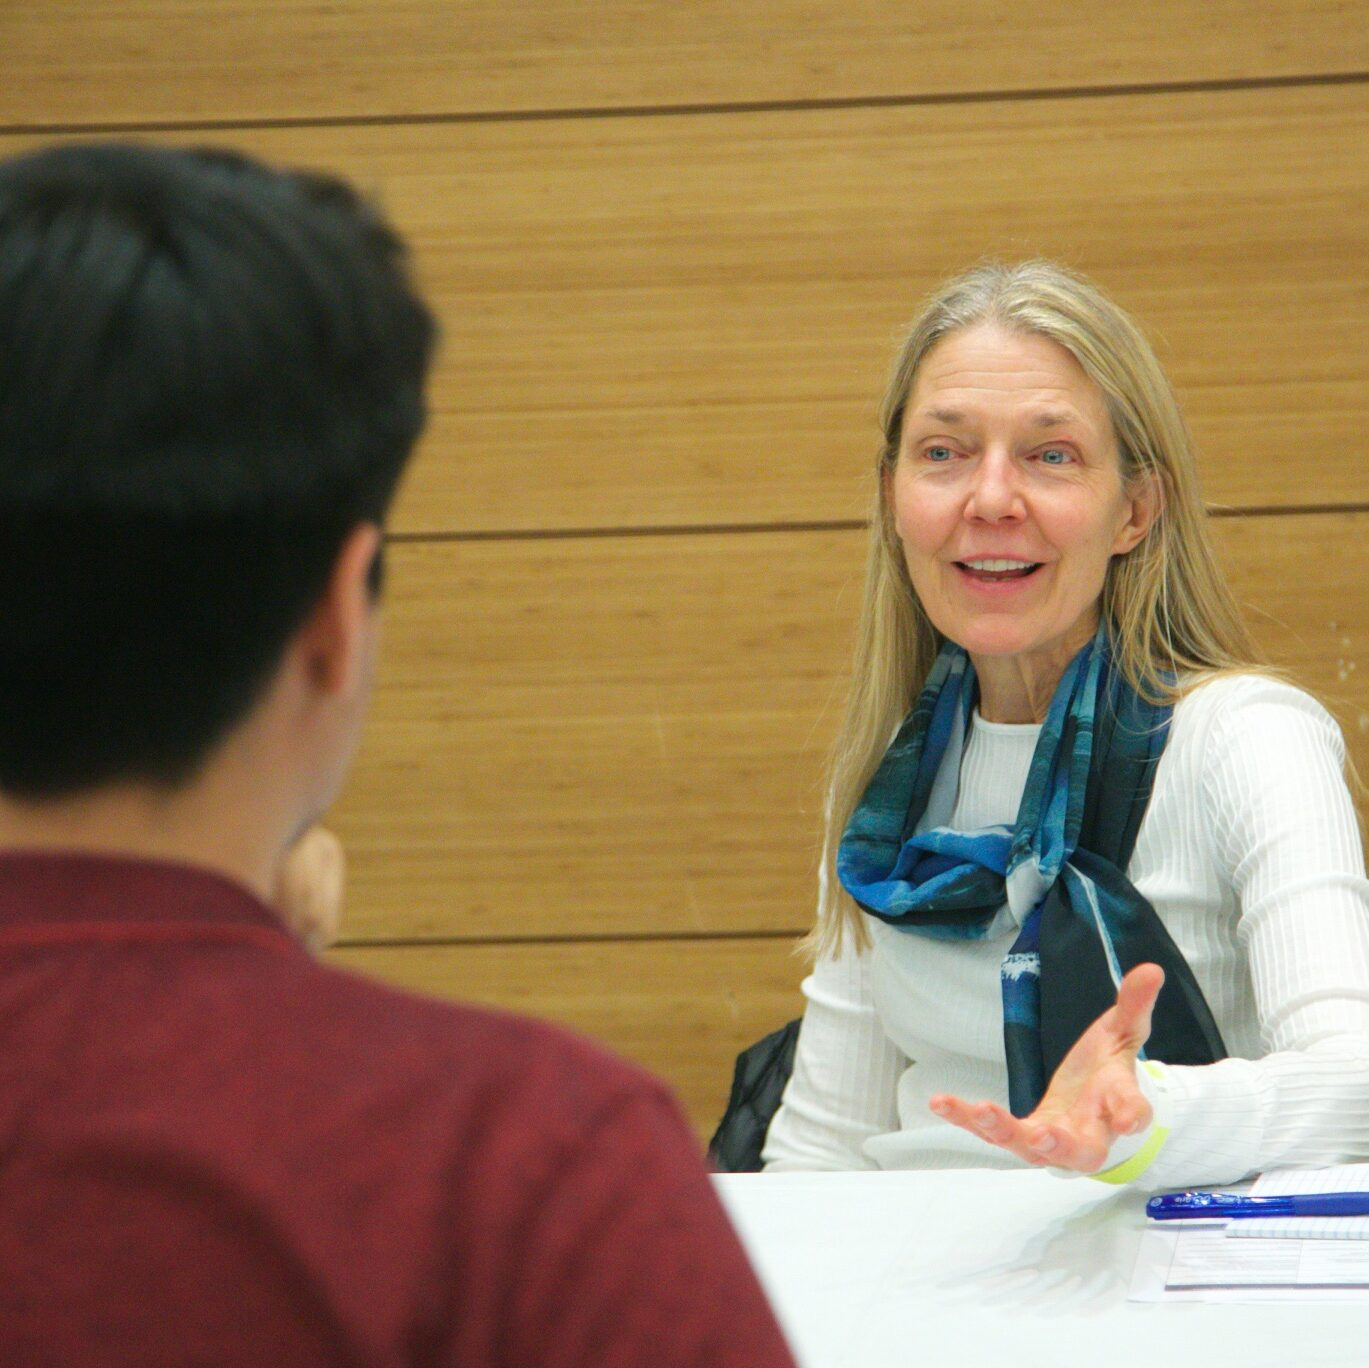 Advisor speaking with a student during a session at a white table